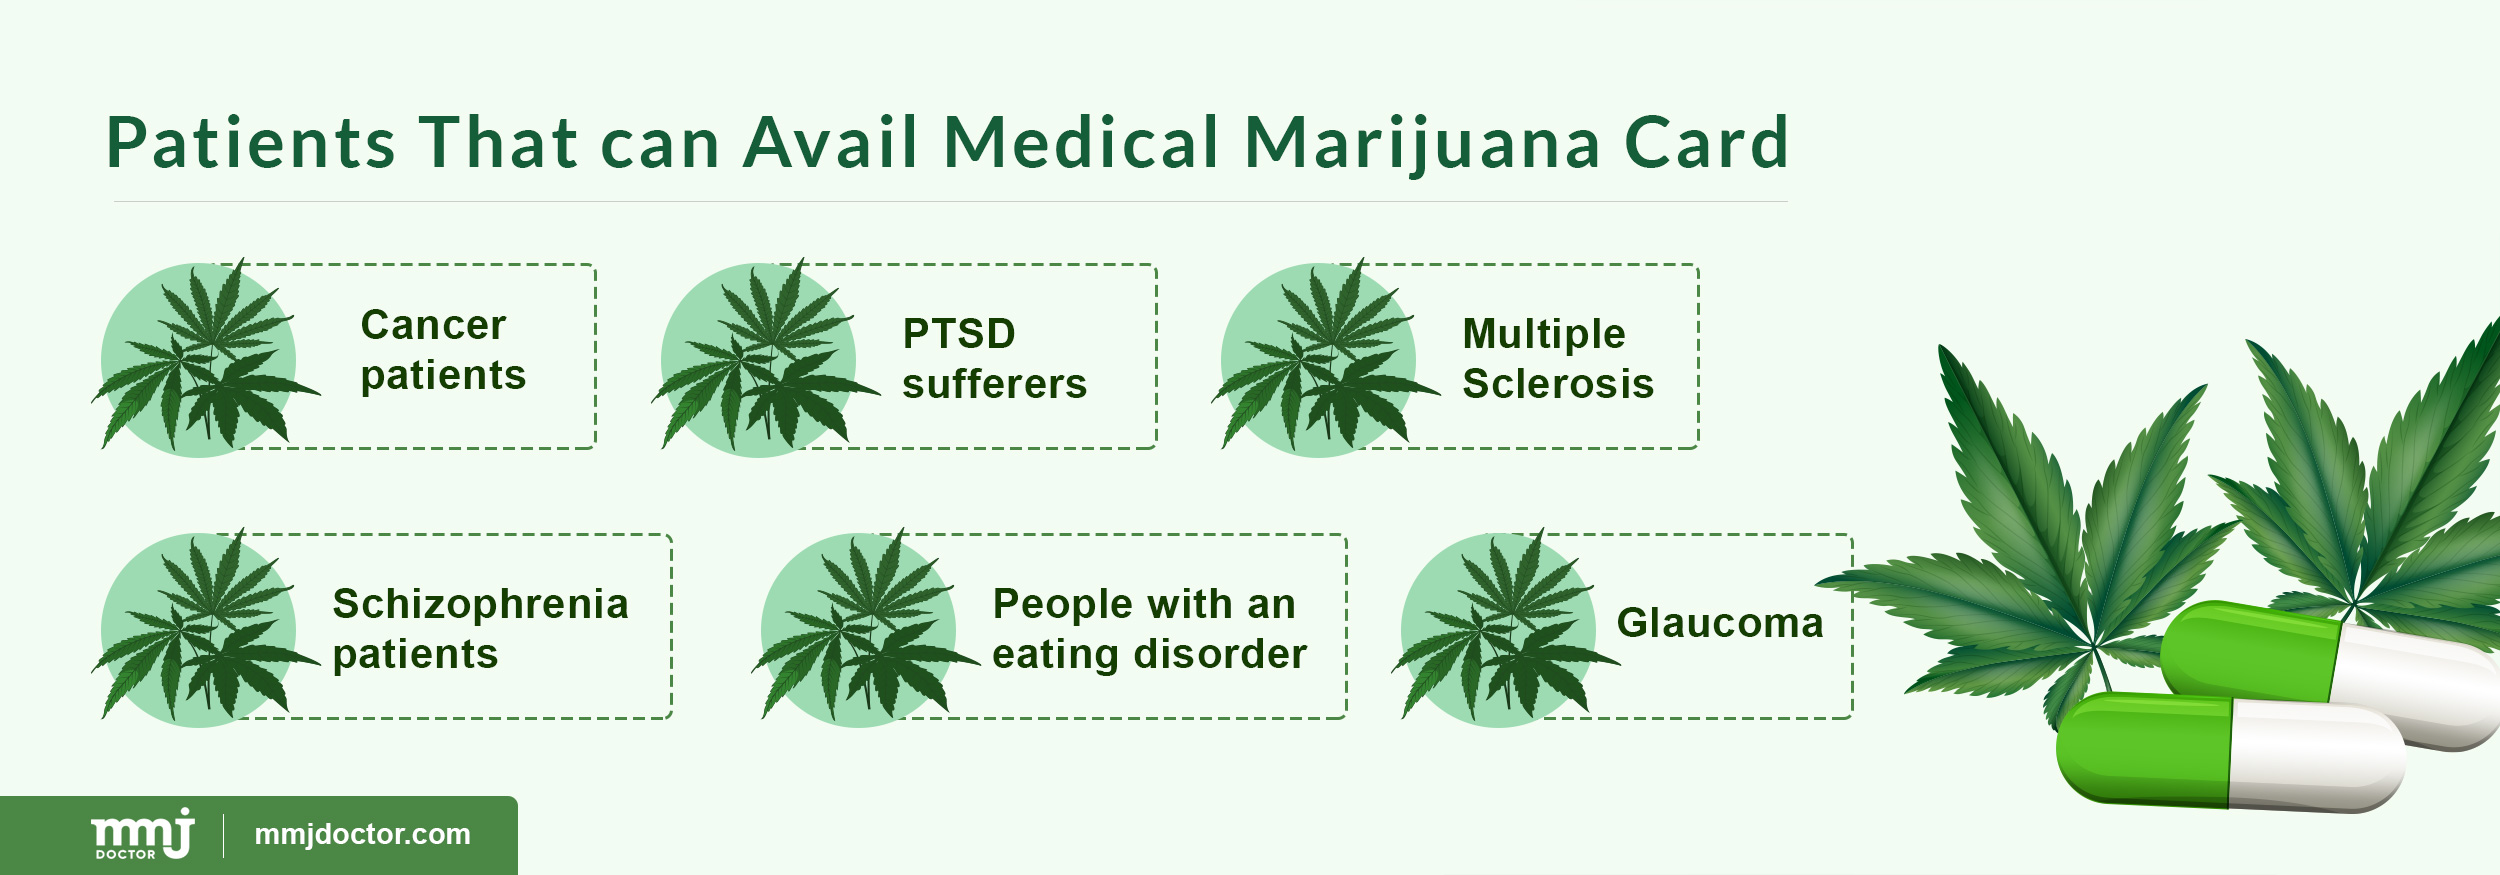 what type of patients can avail medical marijuana